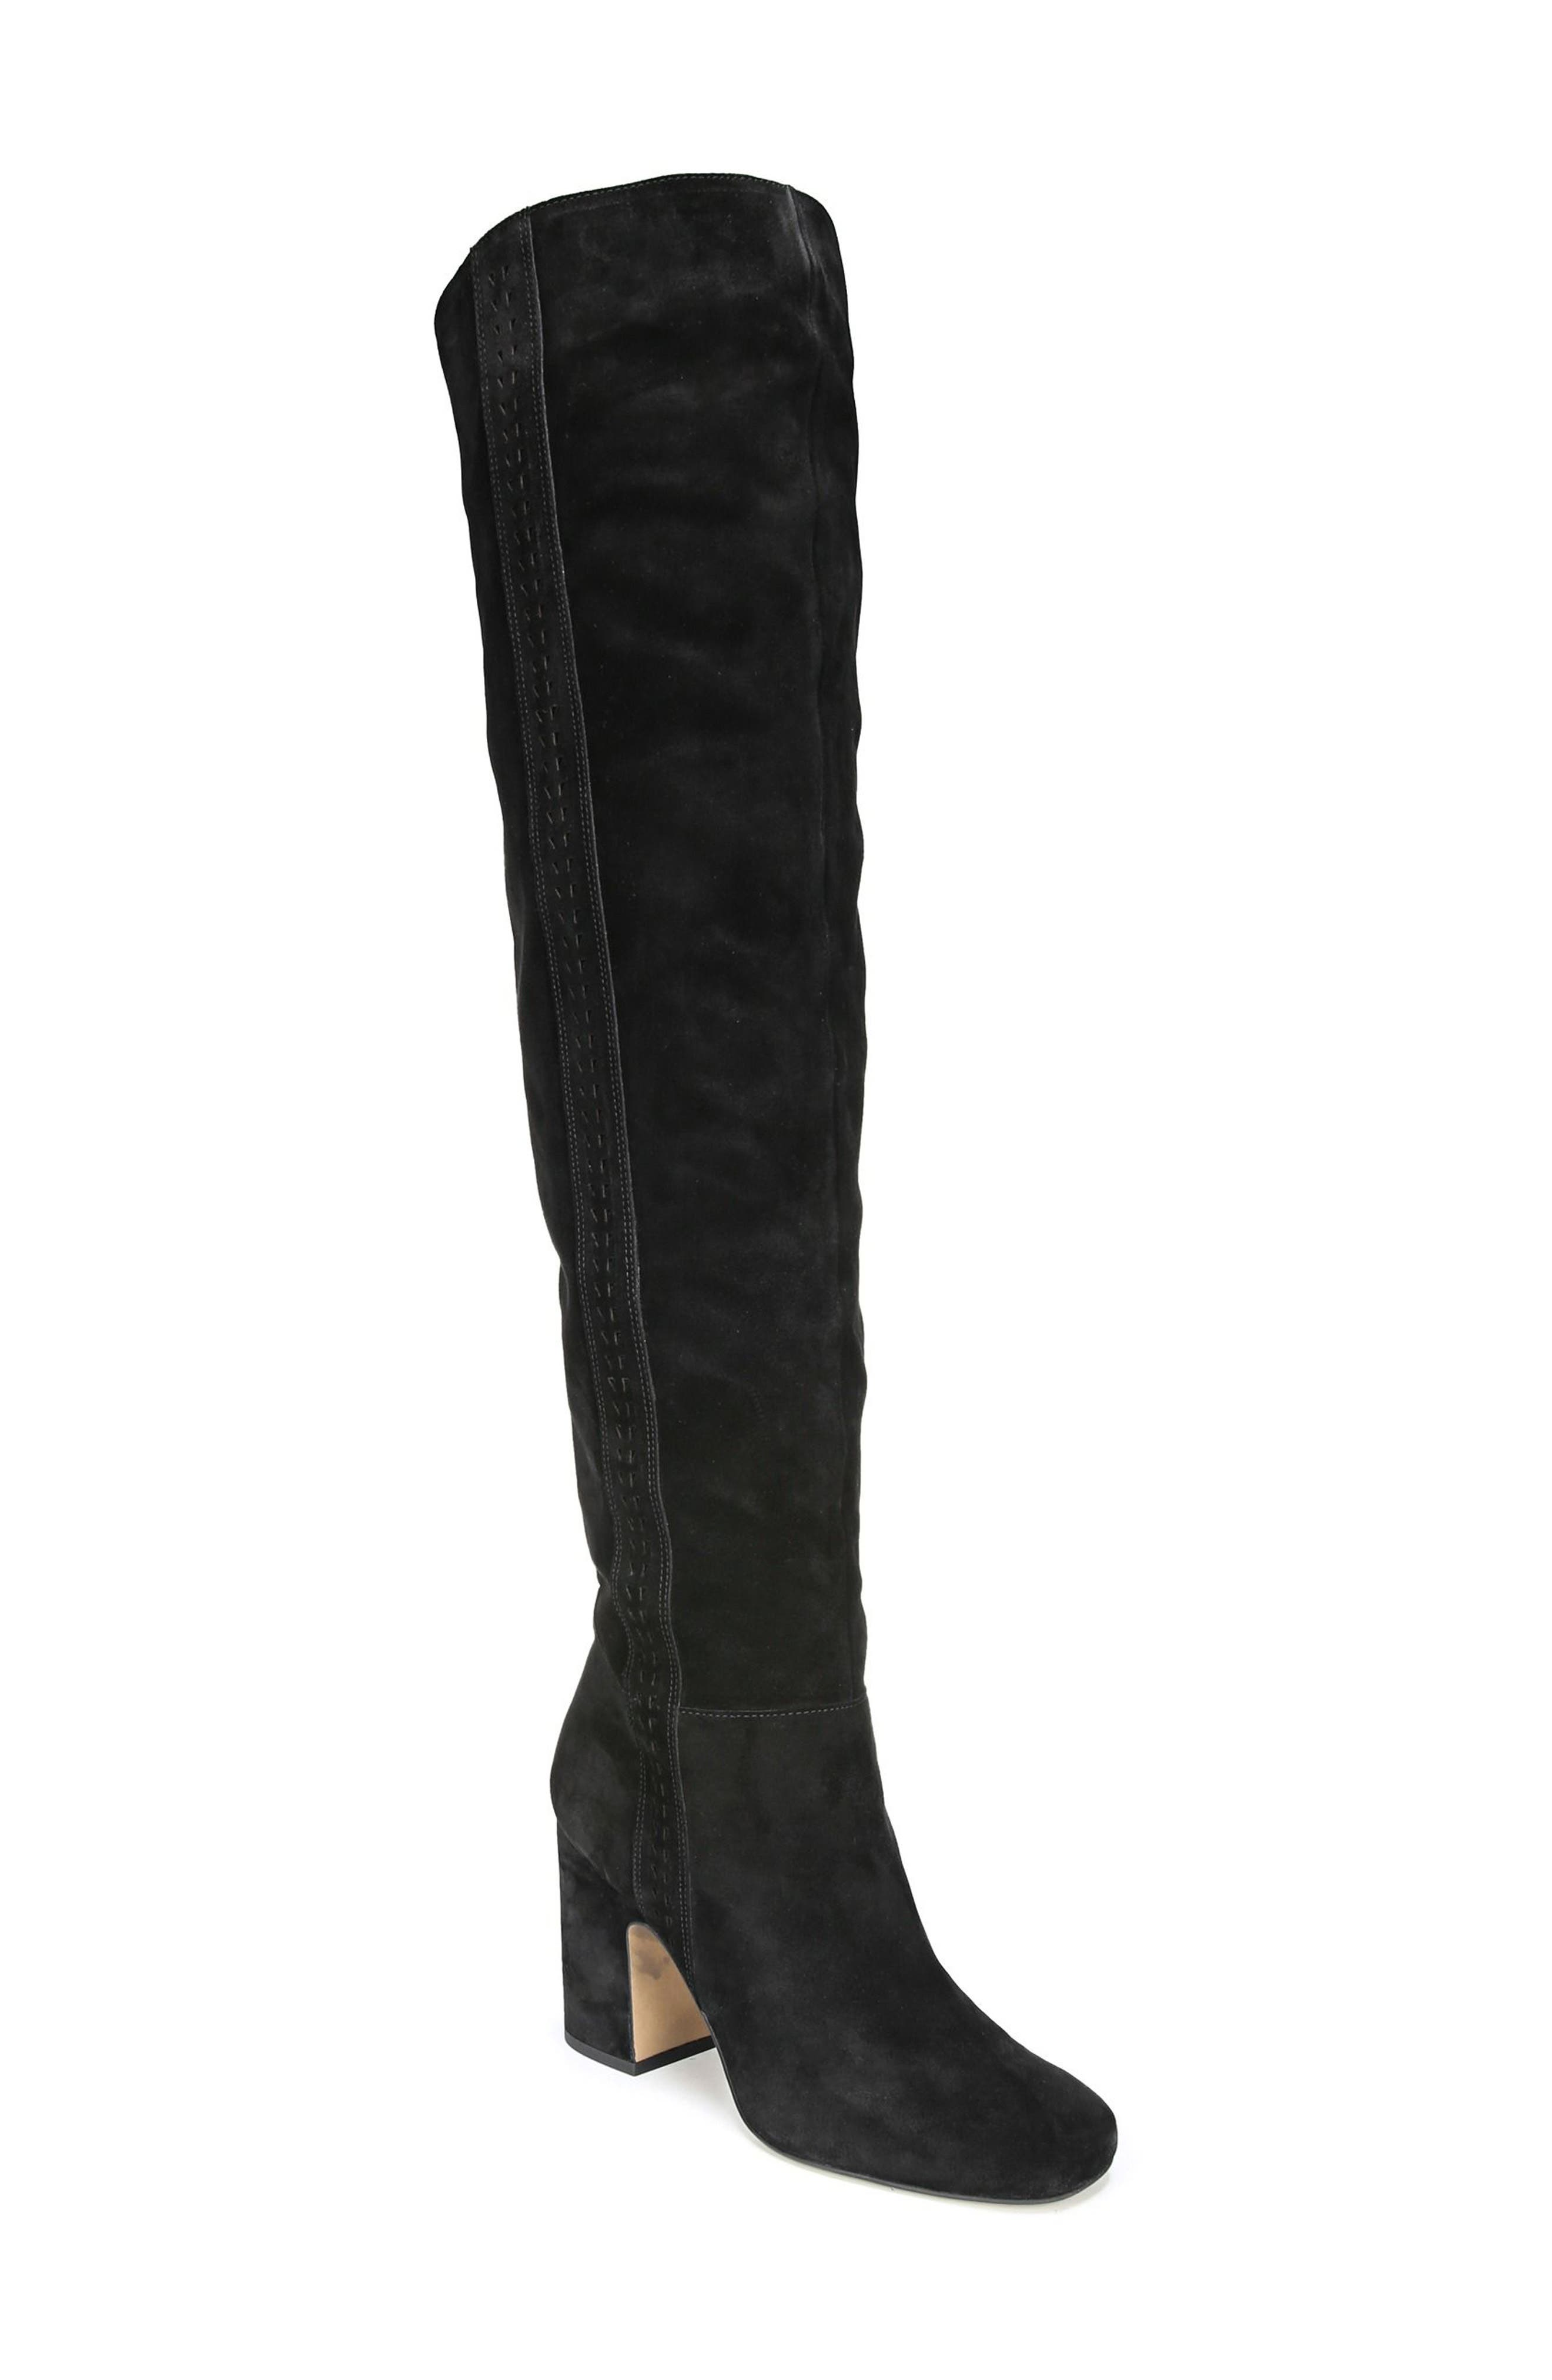 Laurel Over the Knee Boot,                         Main,                         color, Black Suede